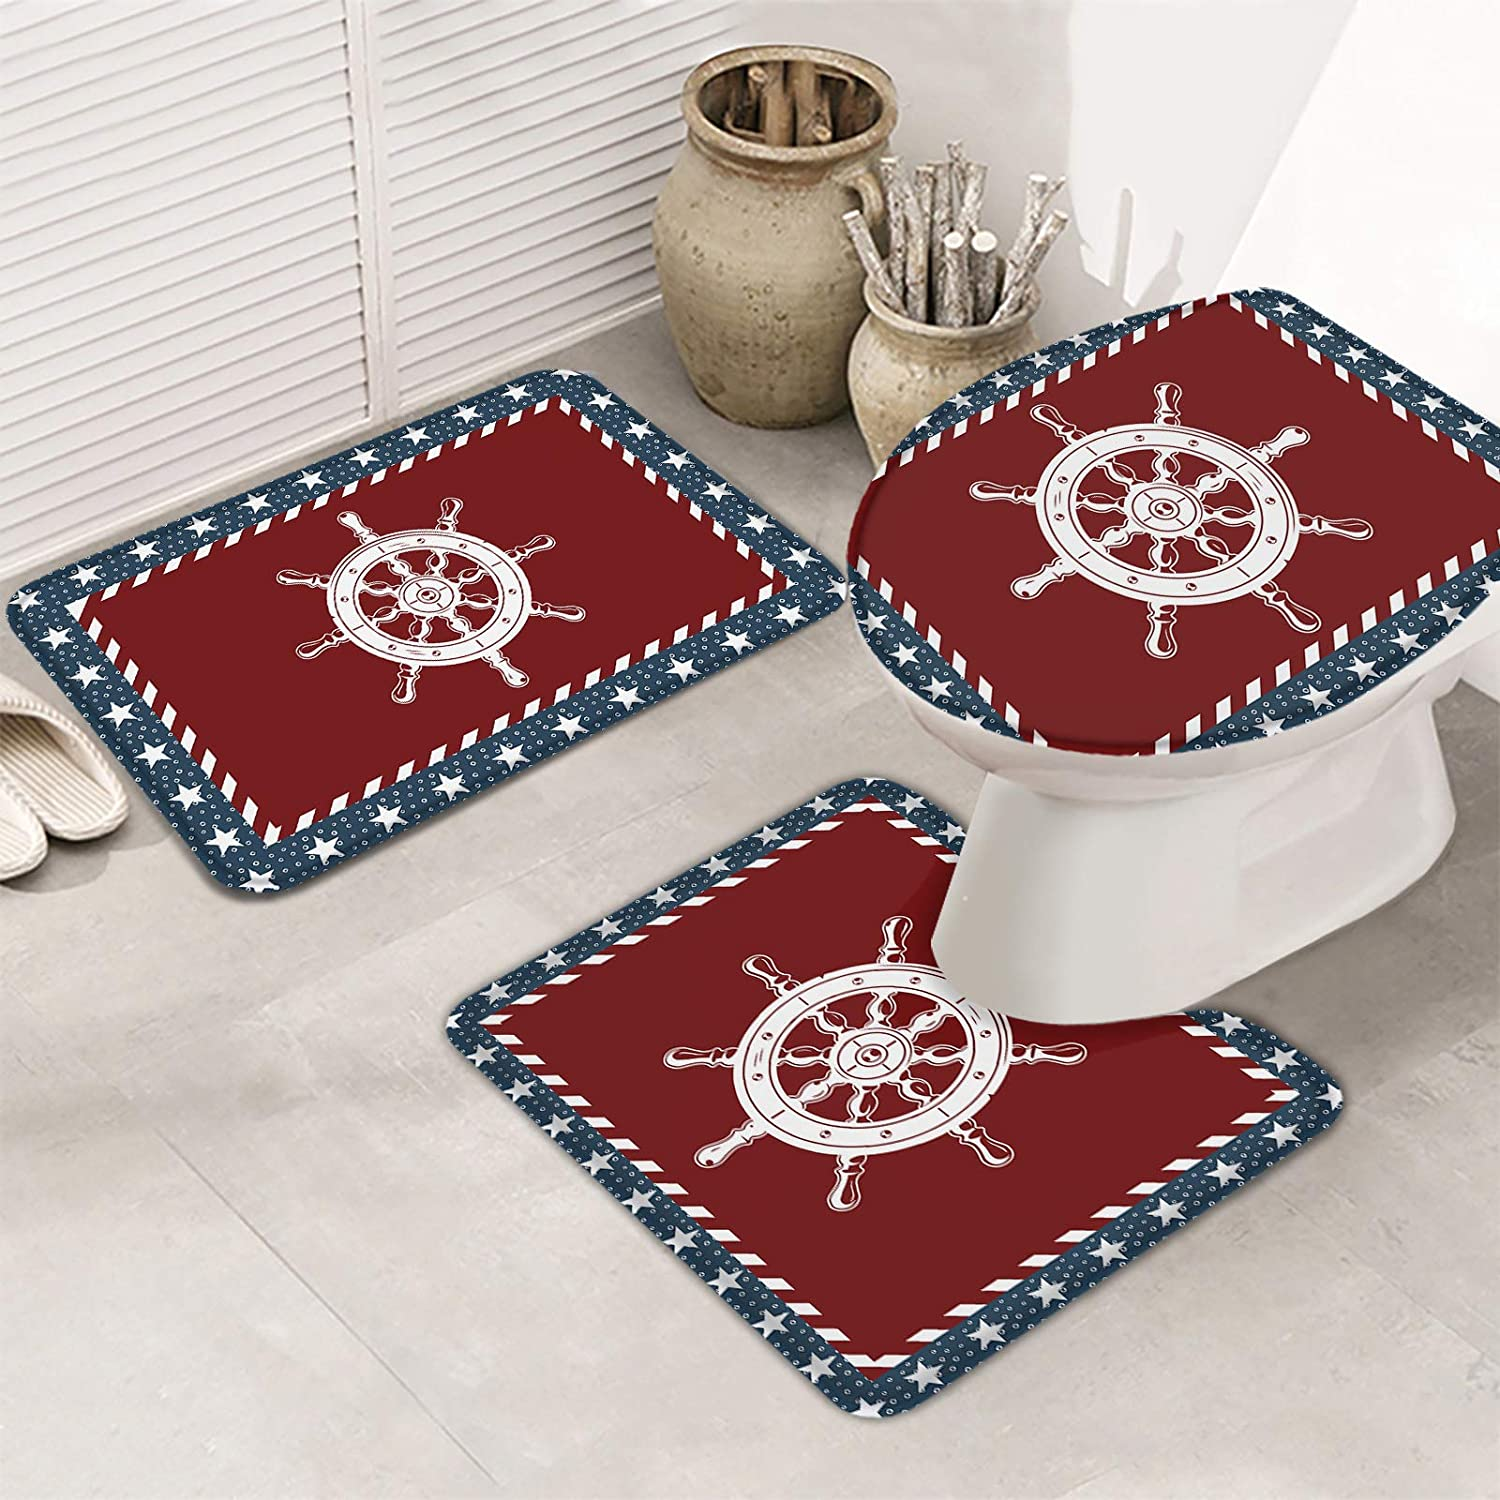 Women Trend 3 Piece Bath Rugs Day Set Reservation Max 76% OFF Independence Nautical Them